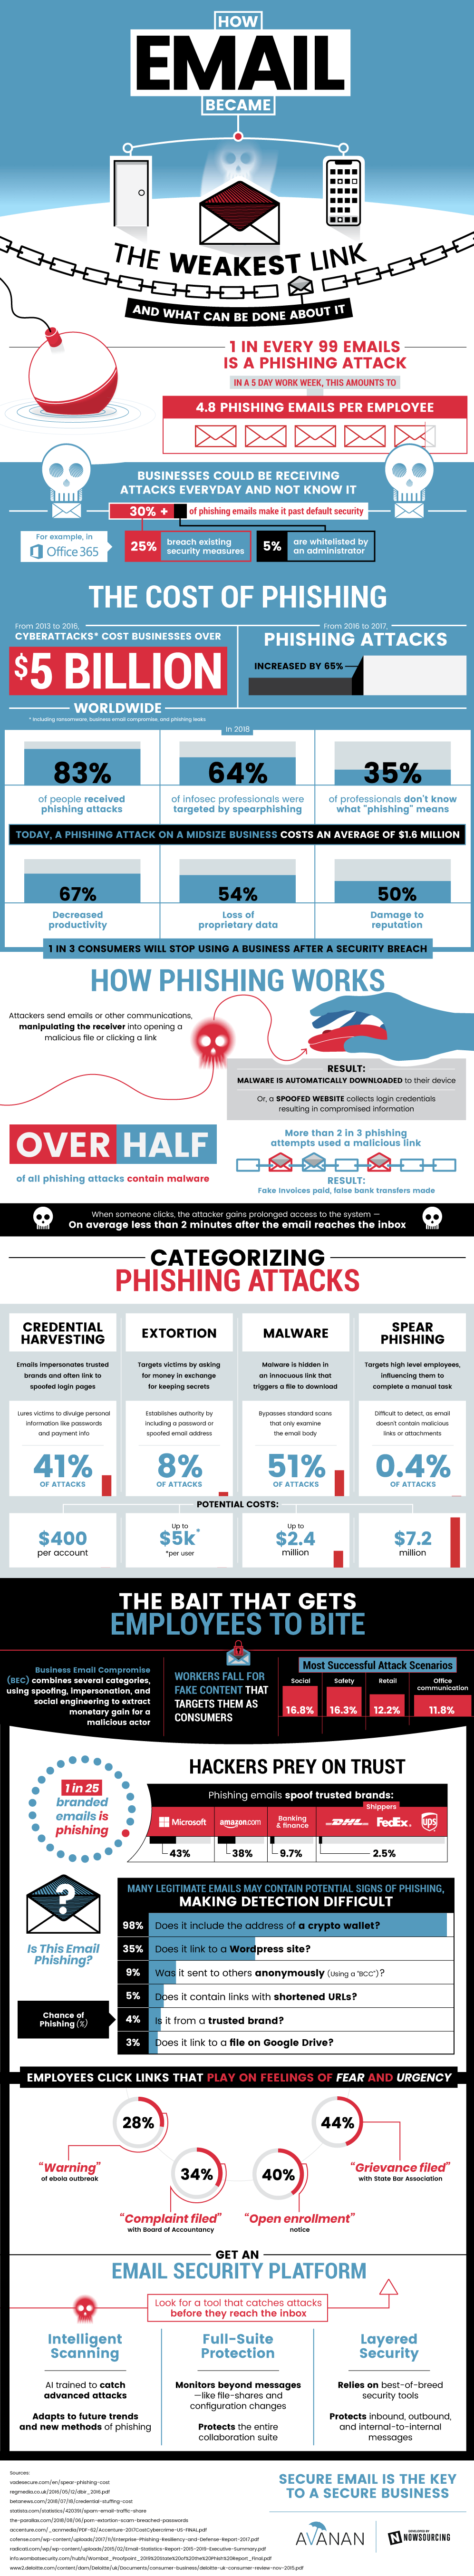 How Email Became the Weakest Link #infographic